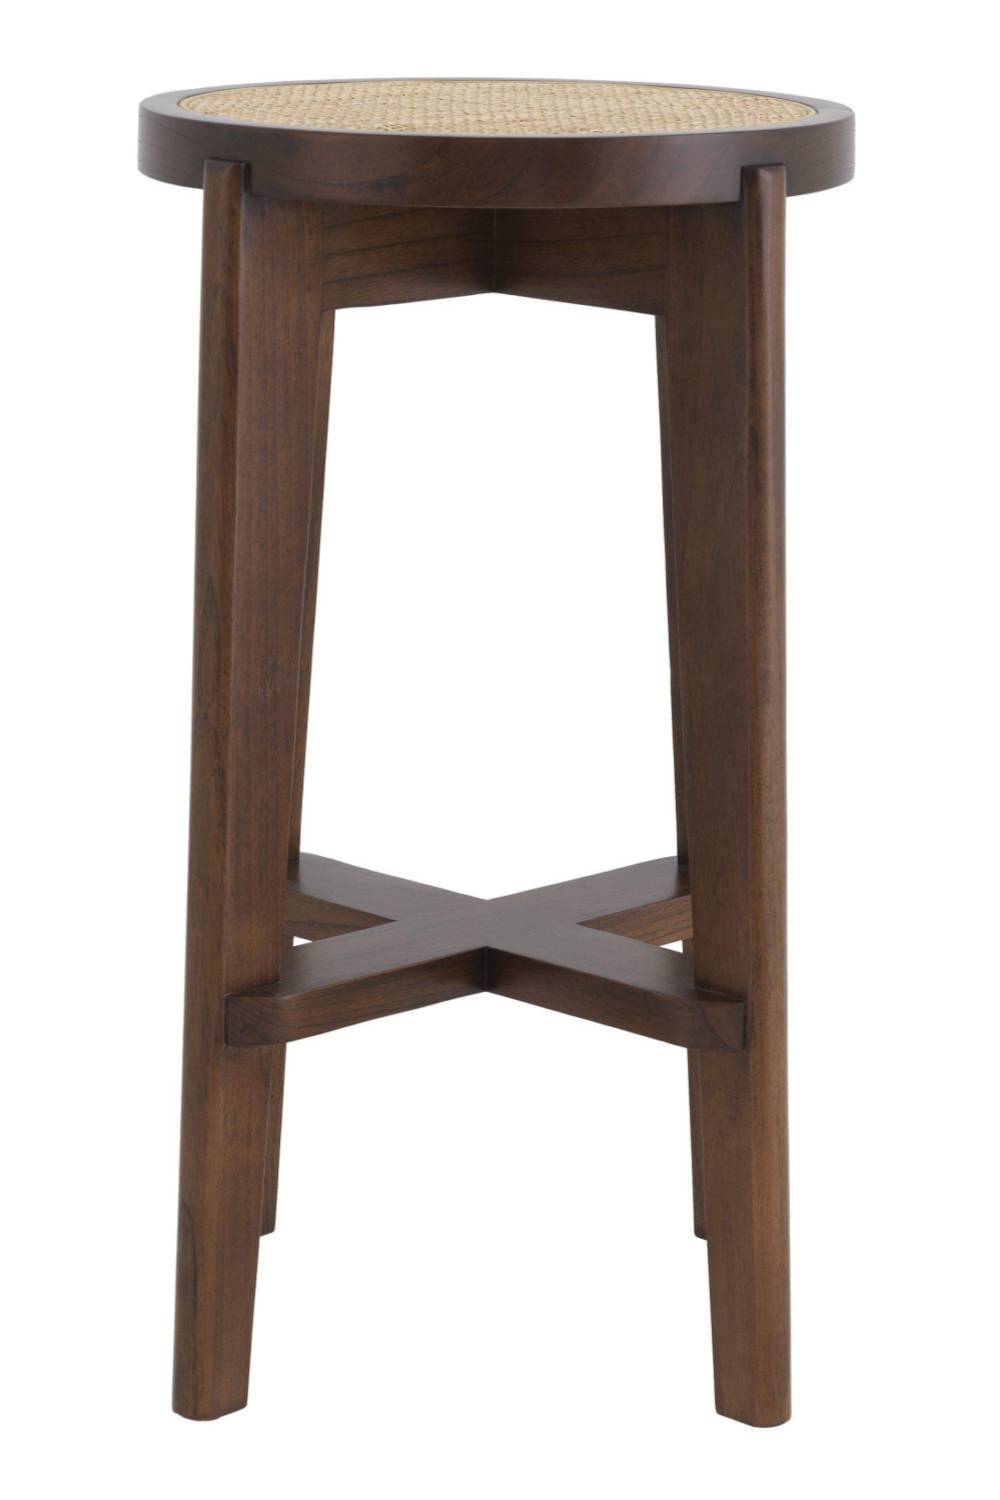 Brown Rattan Bar Stool | Eichholtz Dareau